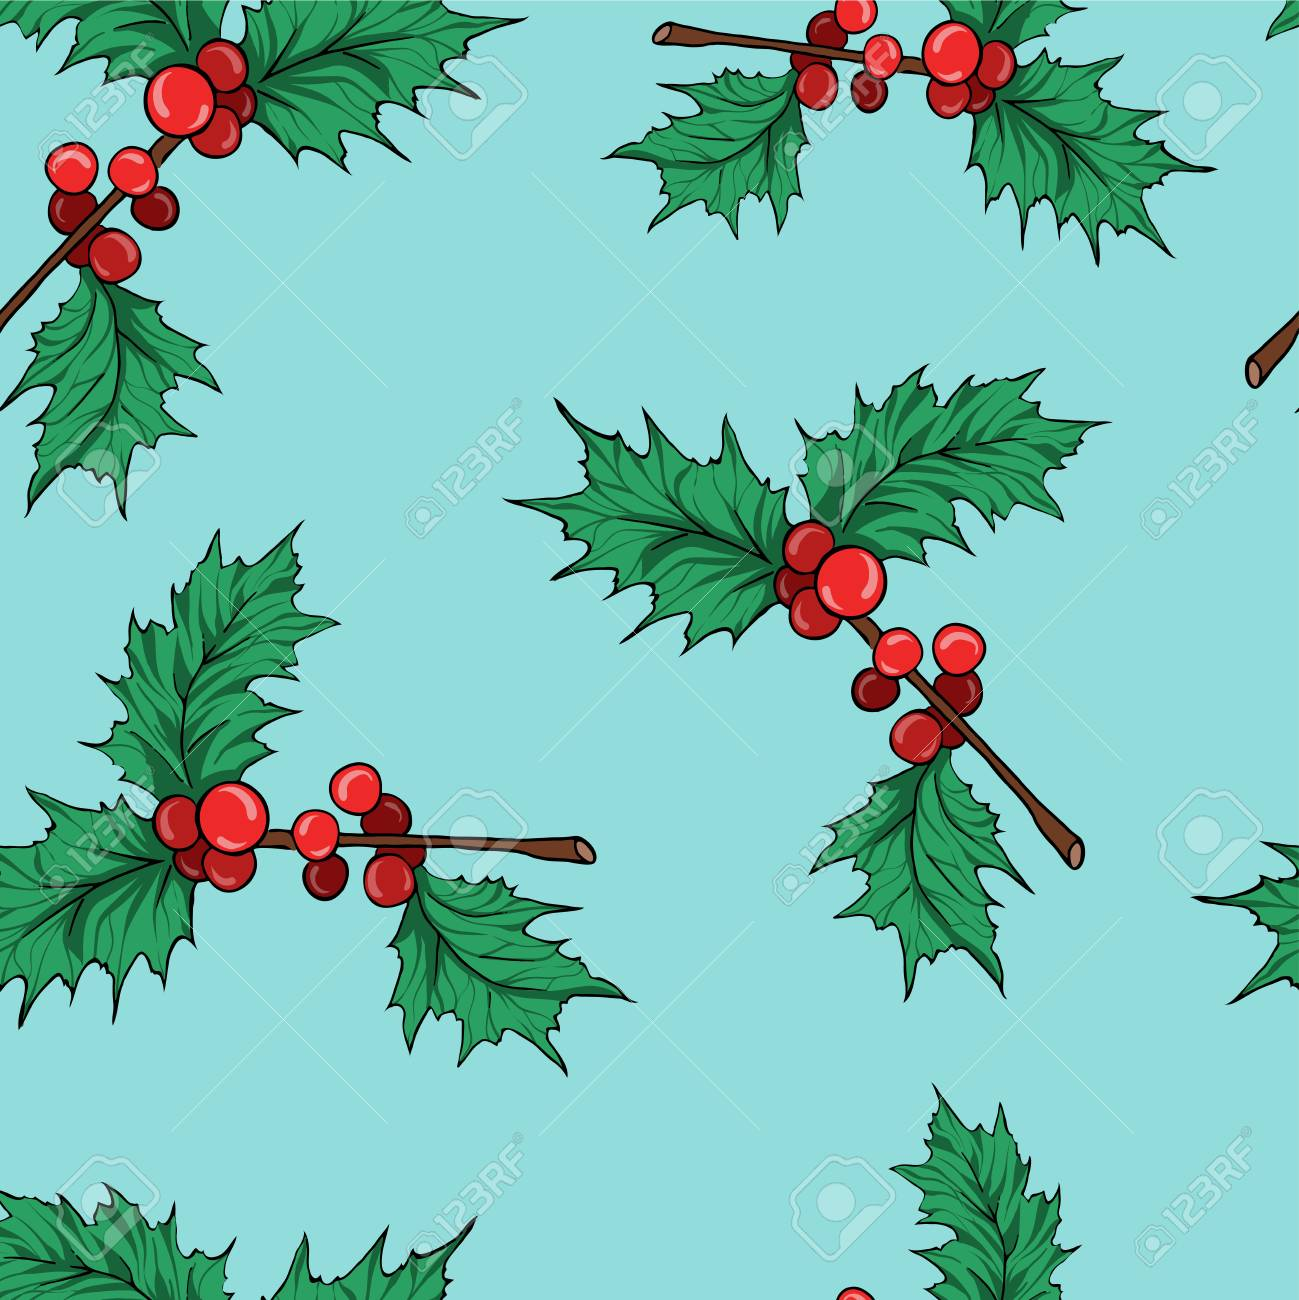 Seamless pattern with holly leaf branches on pastel blue background. Cartoon sketch drawn by ink. Hand drawn vector illustration. - 105829446